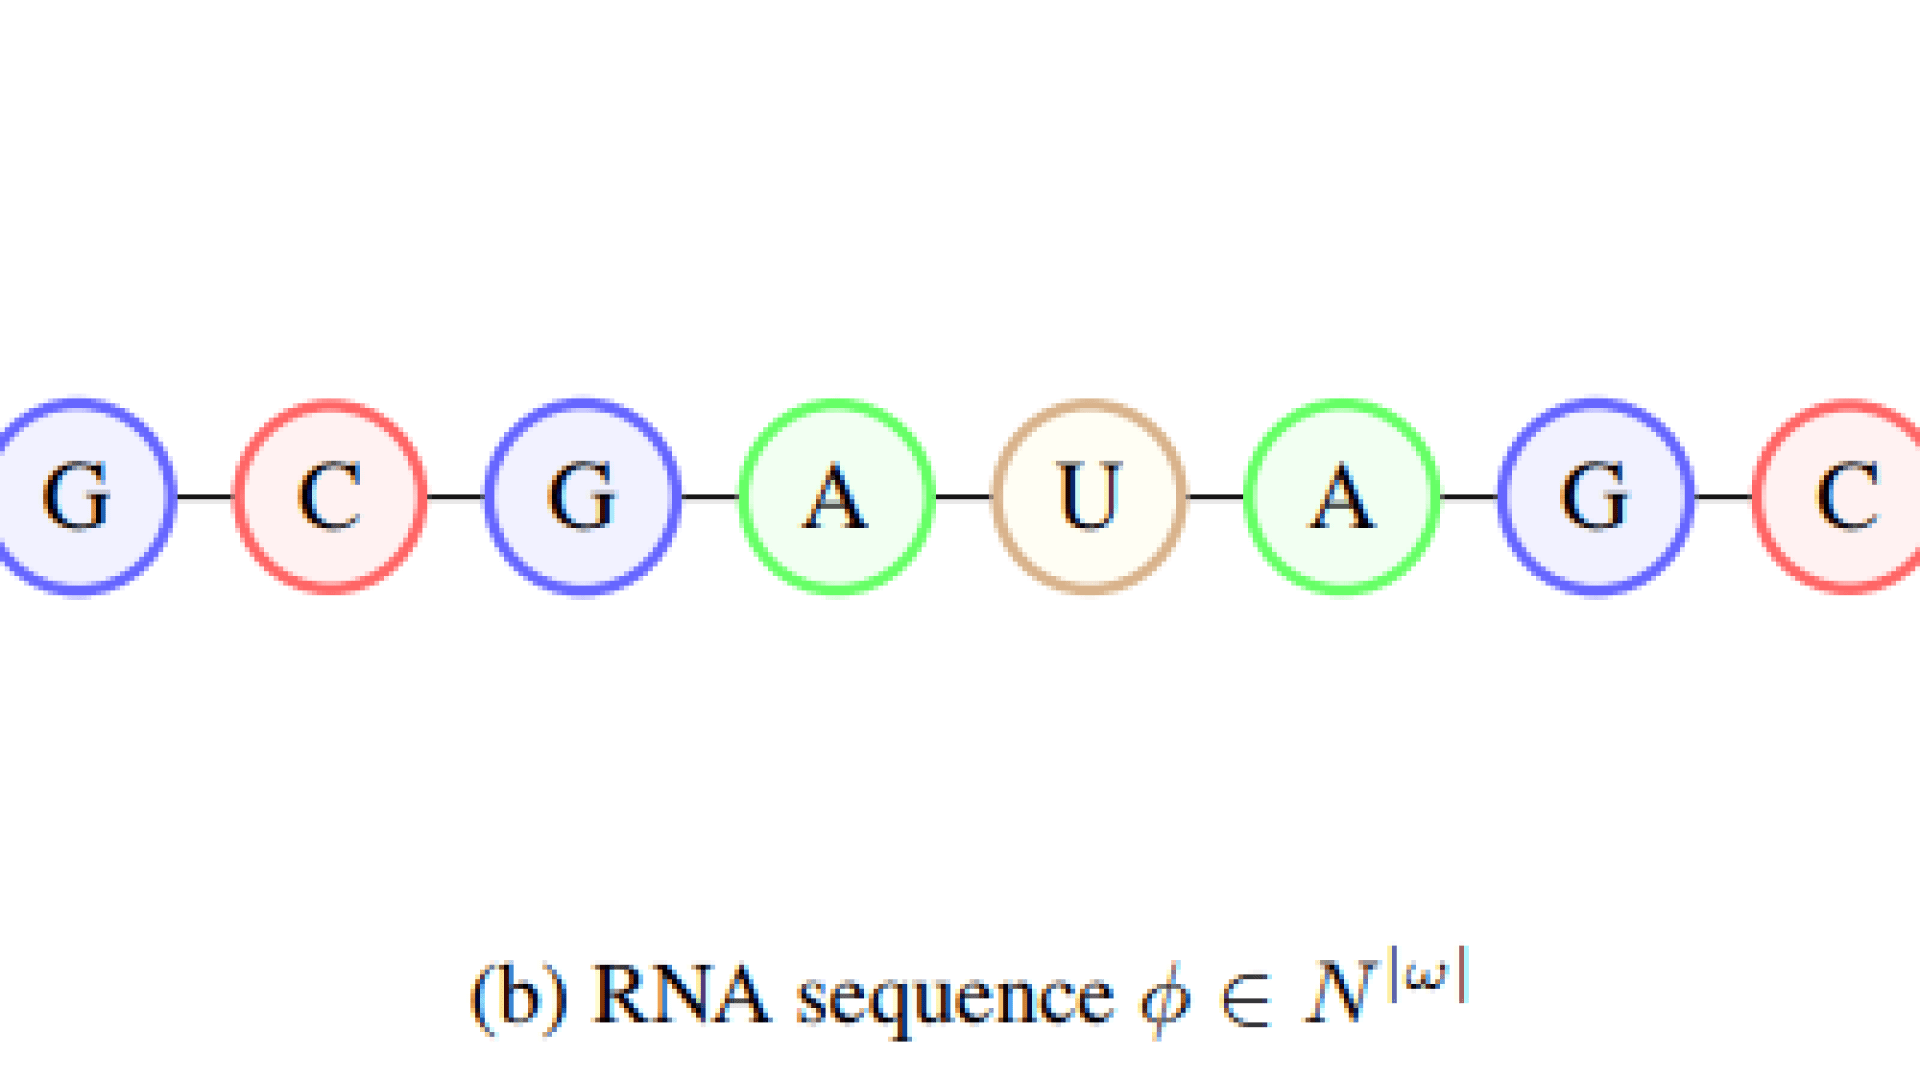 This AI system can design RNA